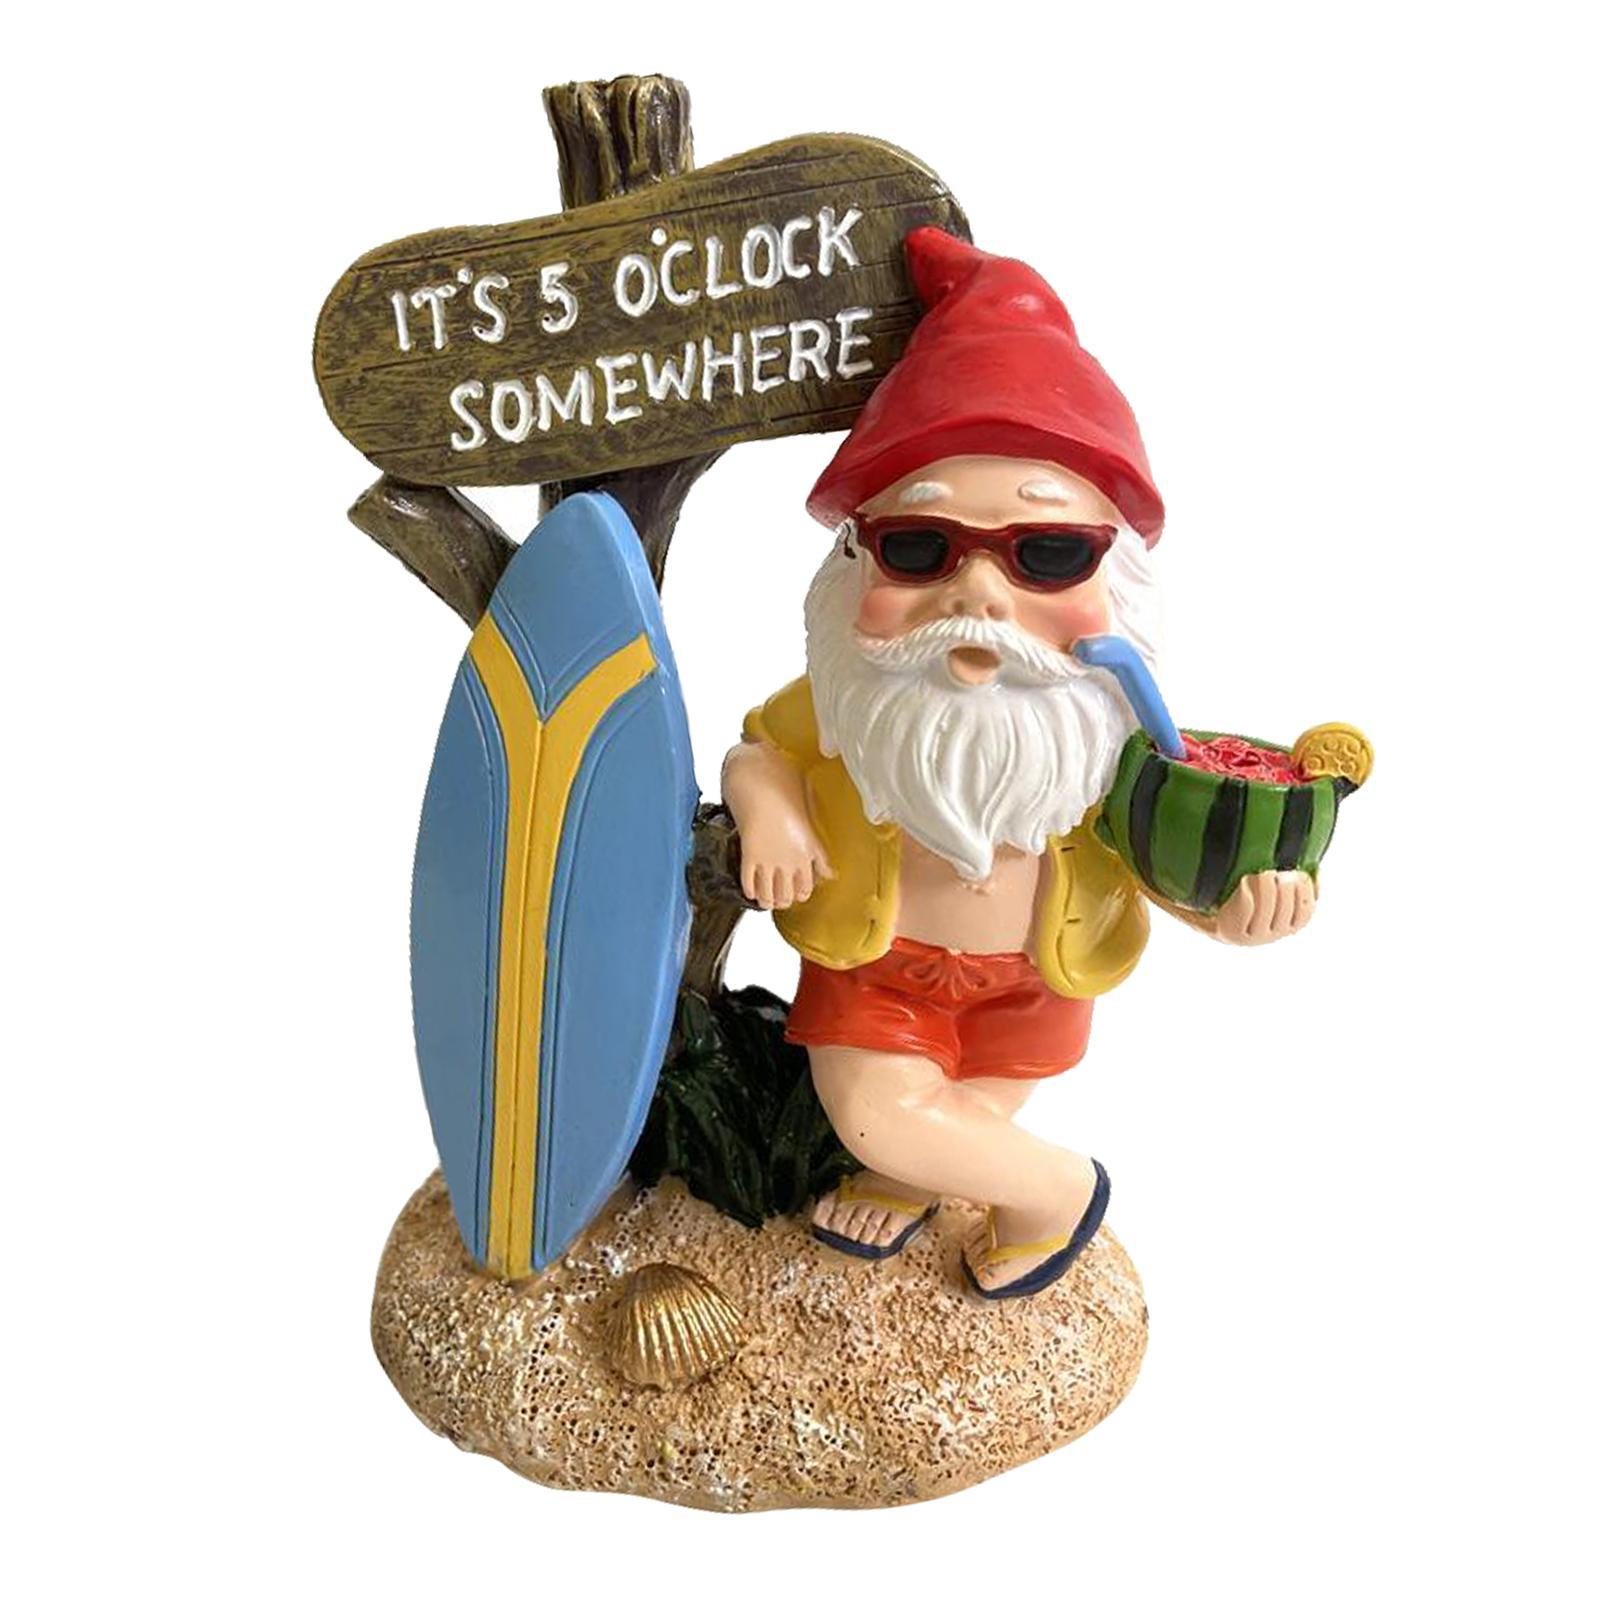 thumbnail 12 - Garden Gnome Statue Small Resin Lawn Gnome Scuplture Funny Indoor Outdoor Decor